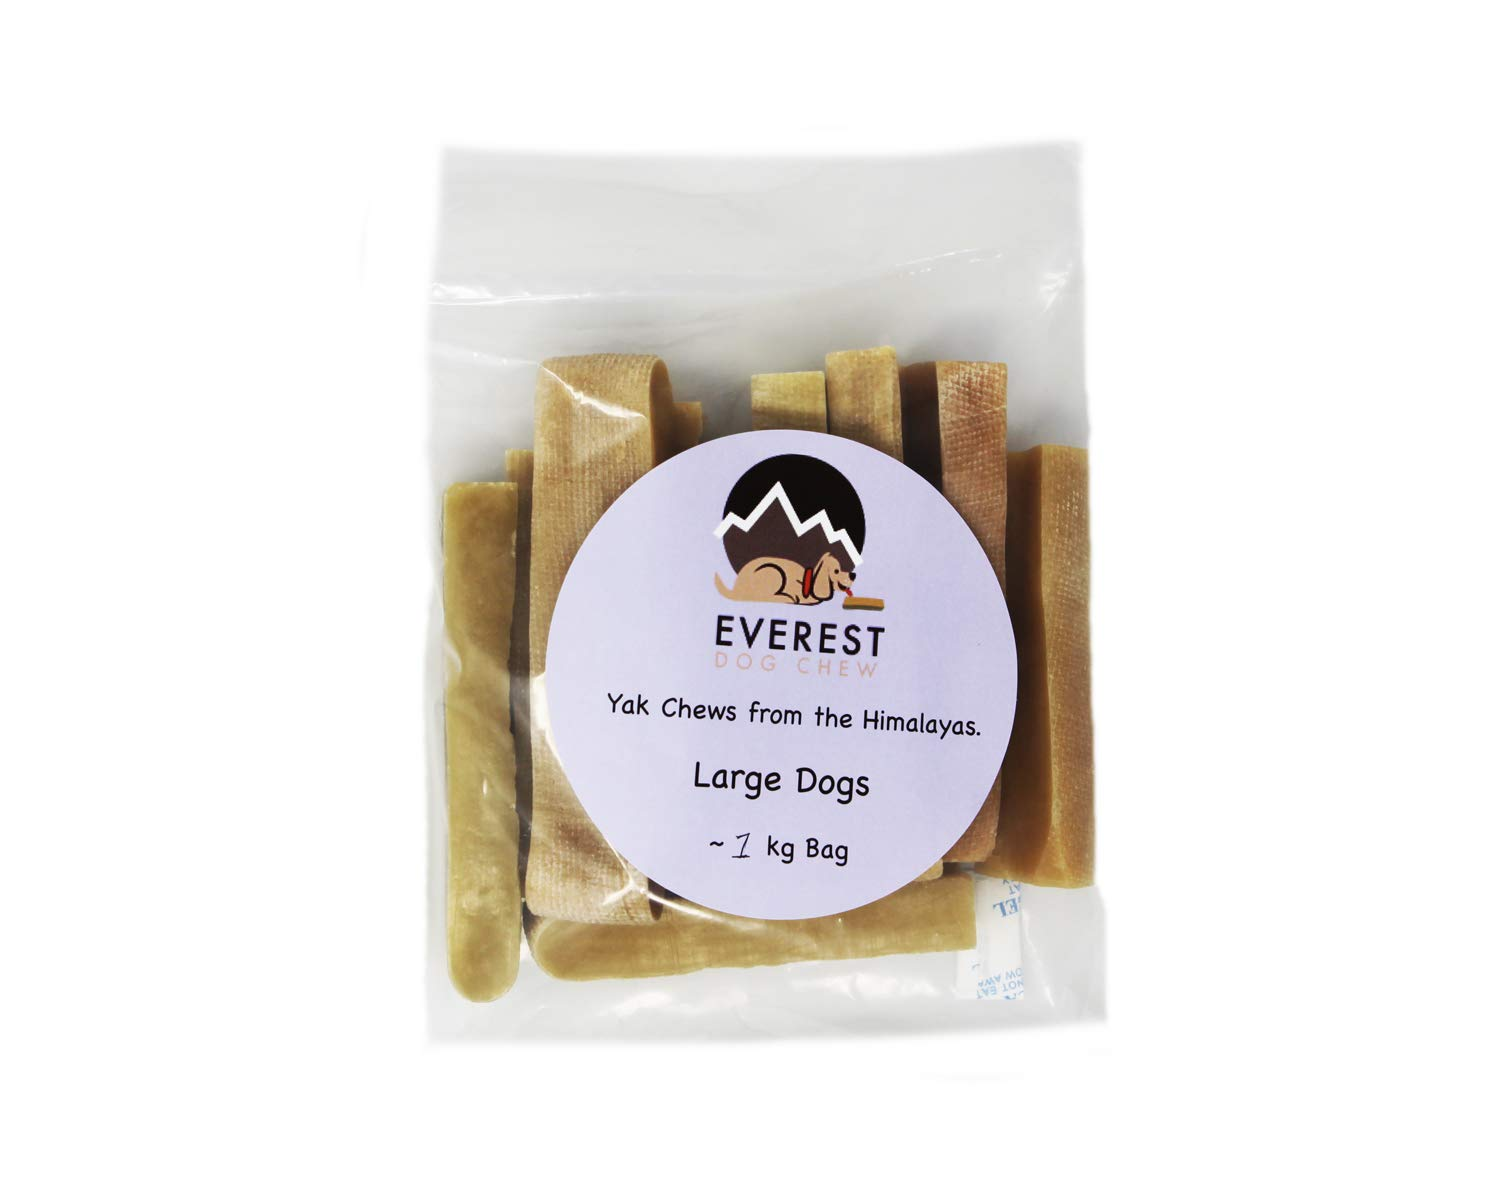 Everest Dog Chew 1KG Large Pack X (11-12 pieces), Yak Chew